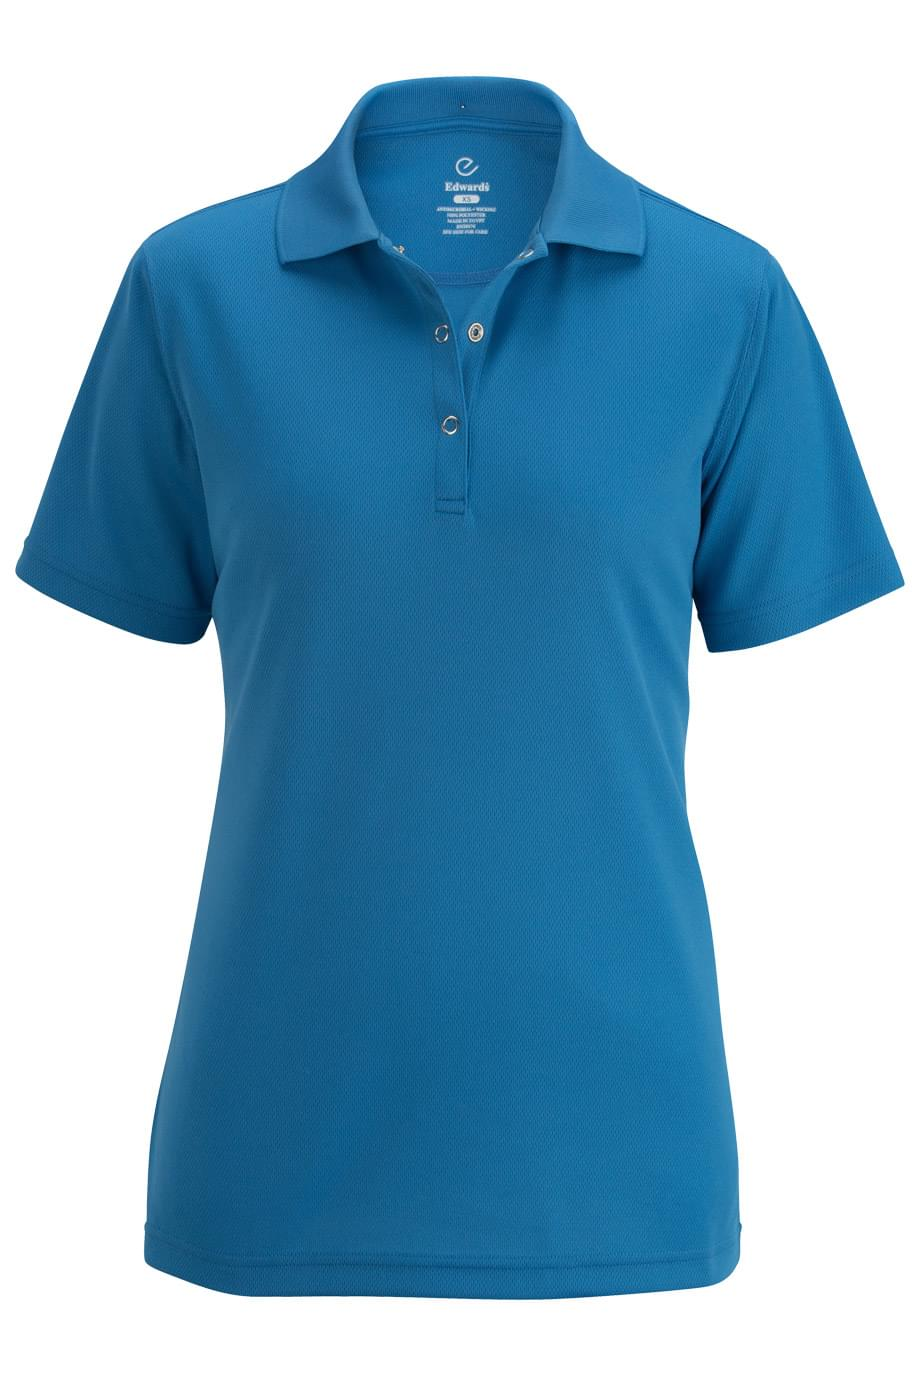 FOOD SERVICE MESH POLO WITH SNAP FRONT